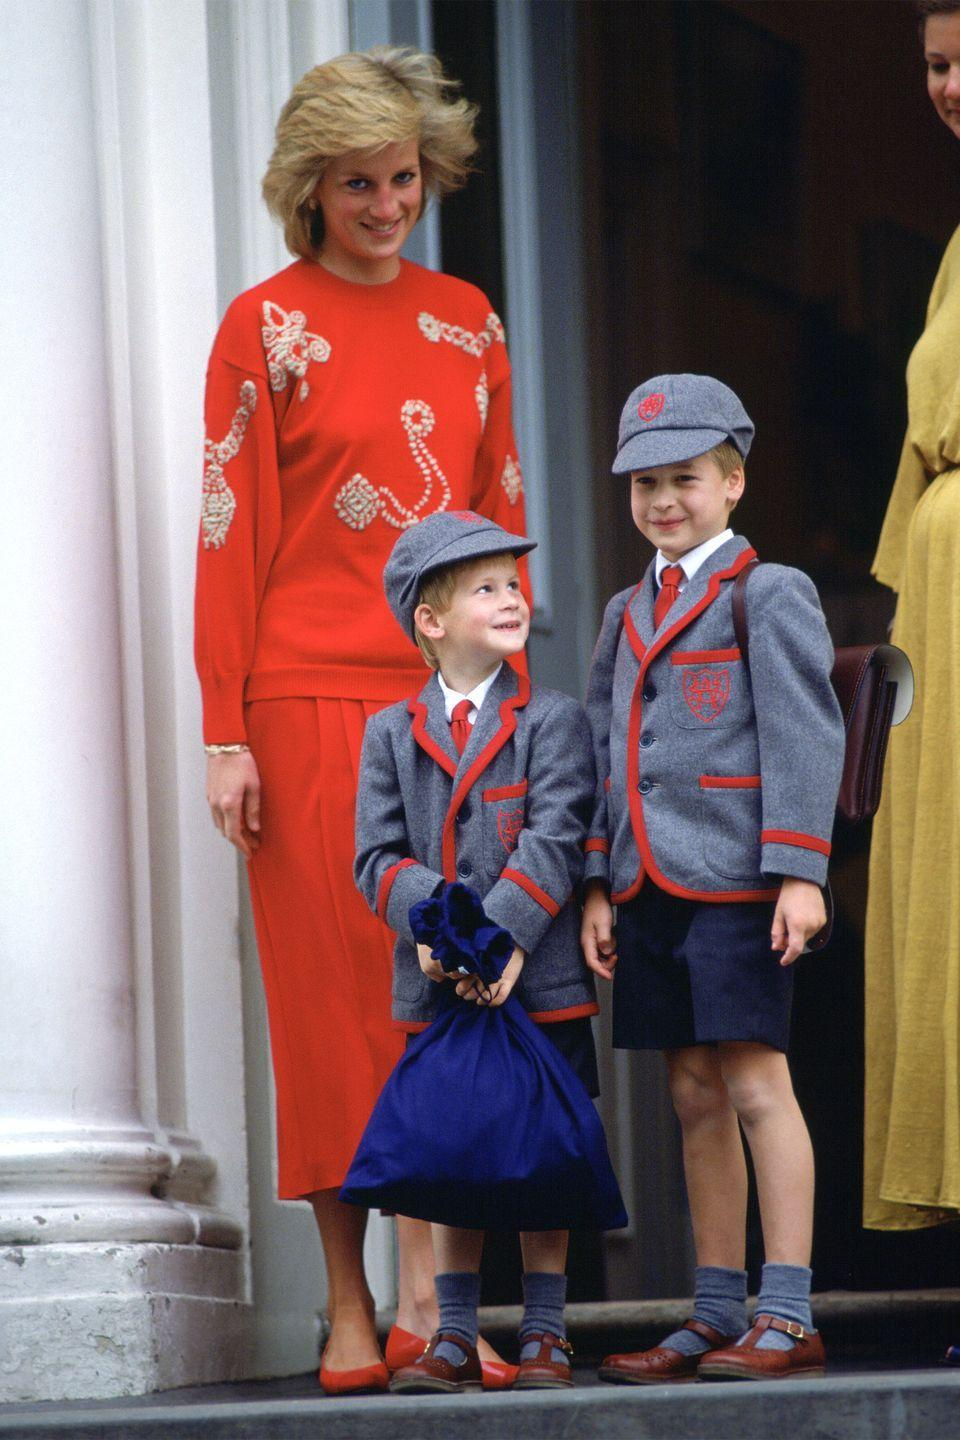 <p>Standing on the steps of Wetherby School for Prince Harry's first day of school with both Princes in matching uniforms. </p>